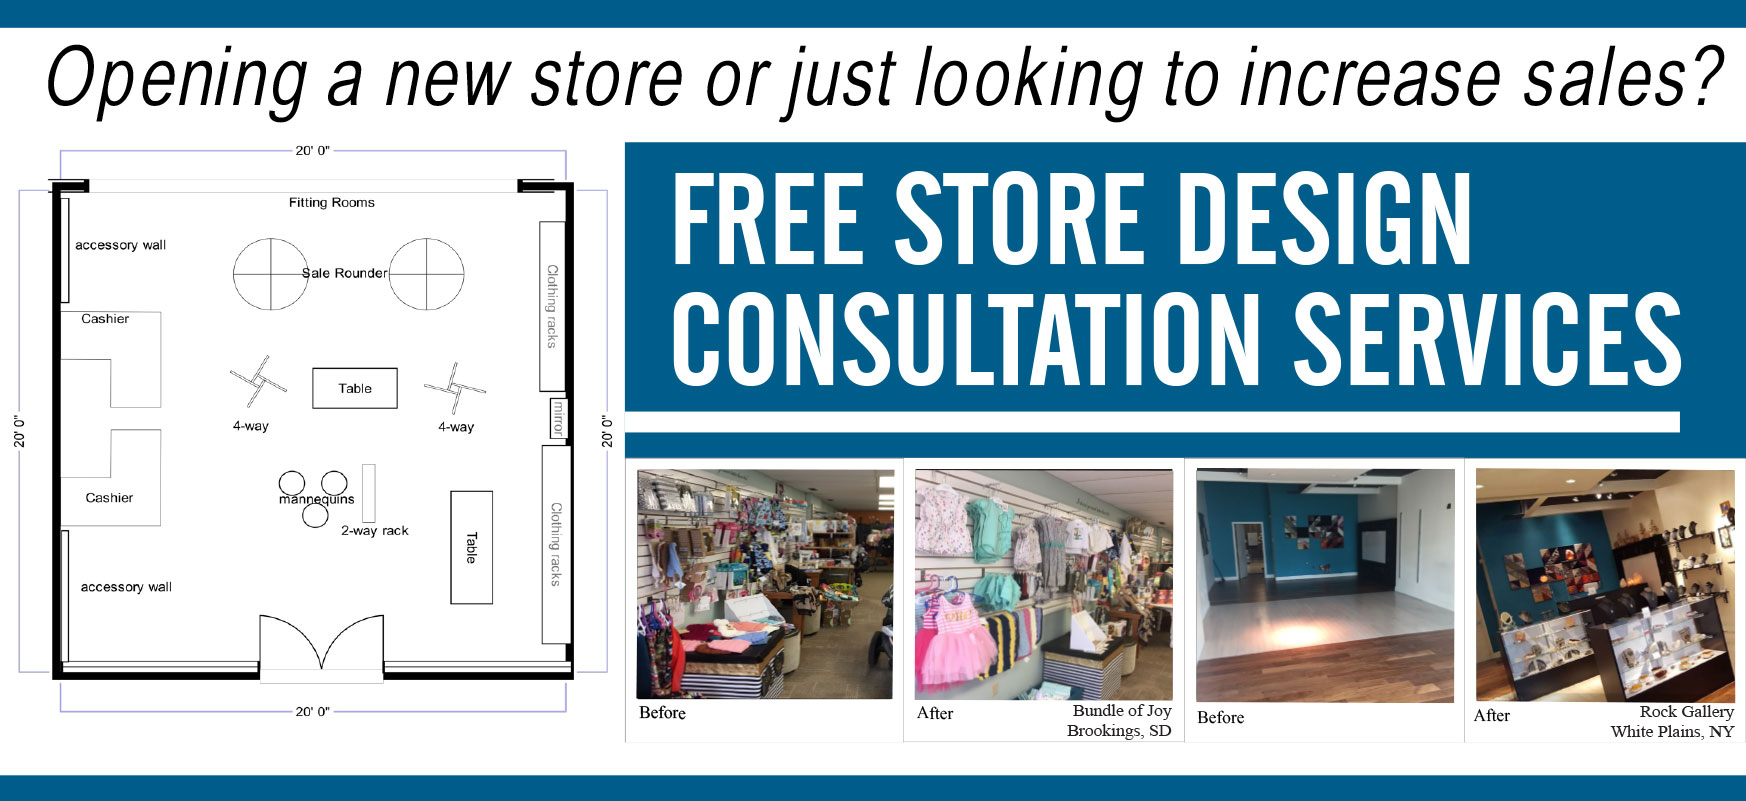 Free Store Design Consultation Services